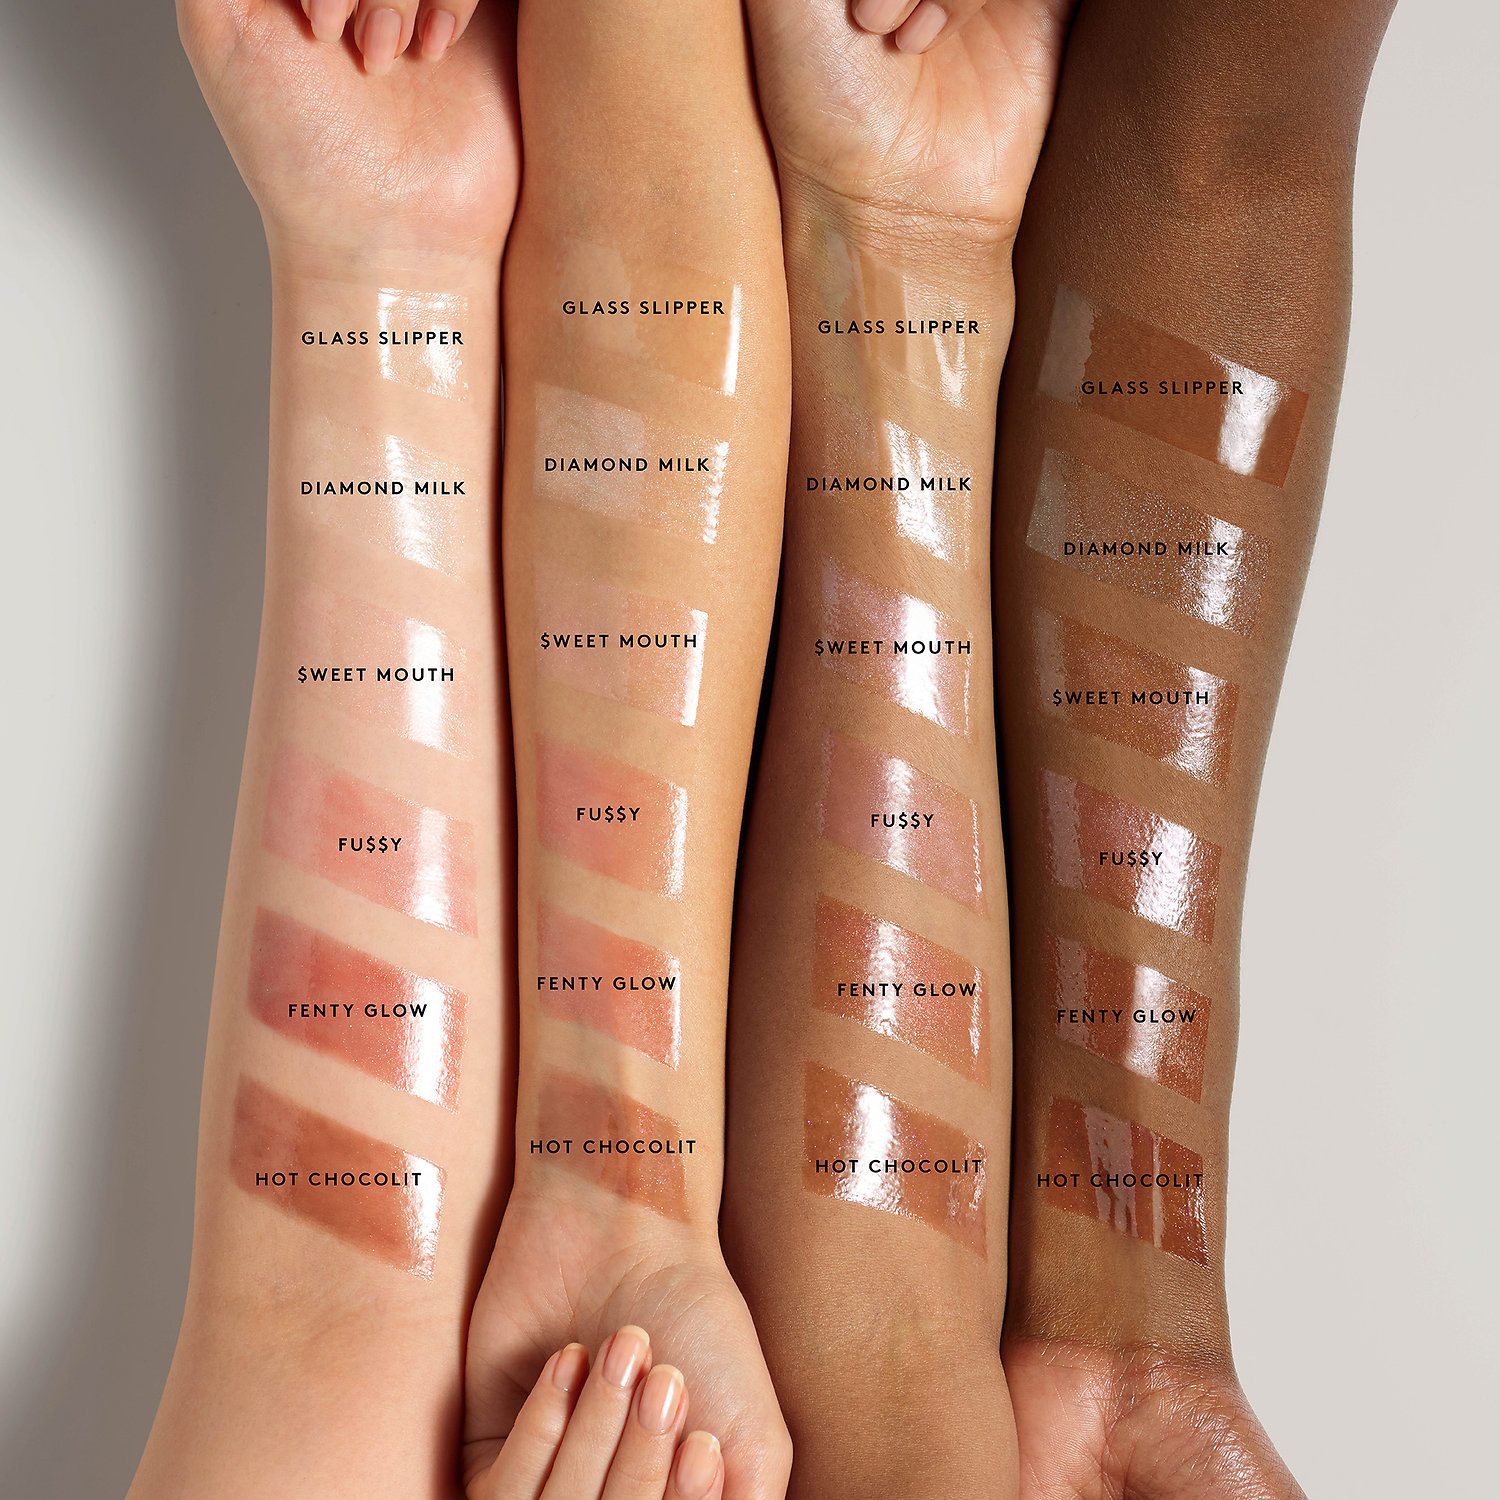 The swatches of glosses on four arms with different skin tones — the gloss colors include pinks, browns, and clears